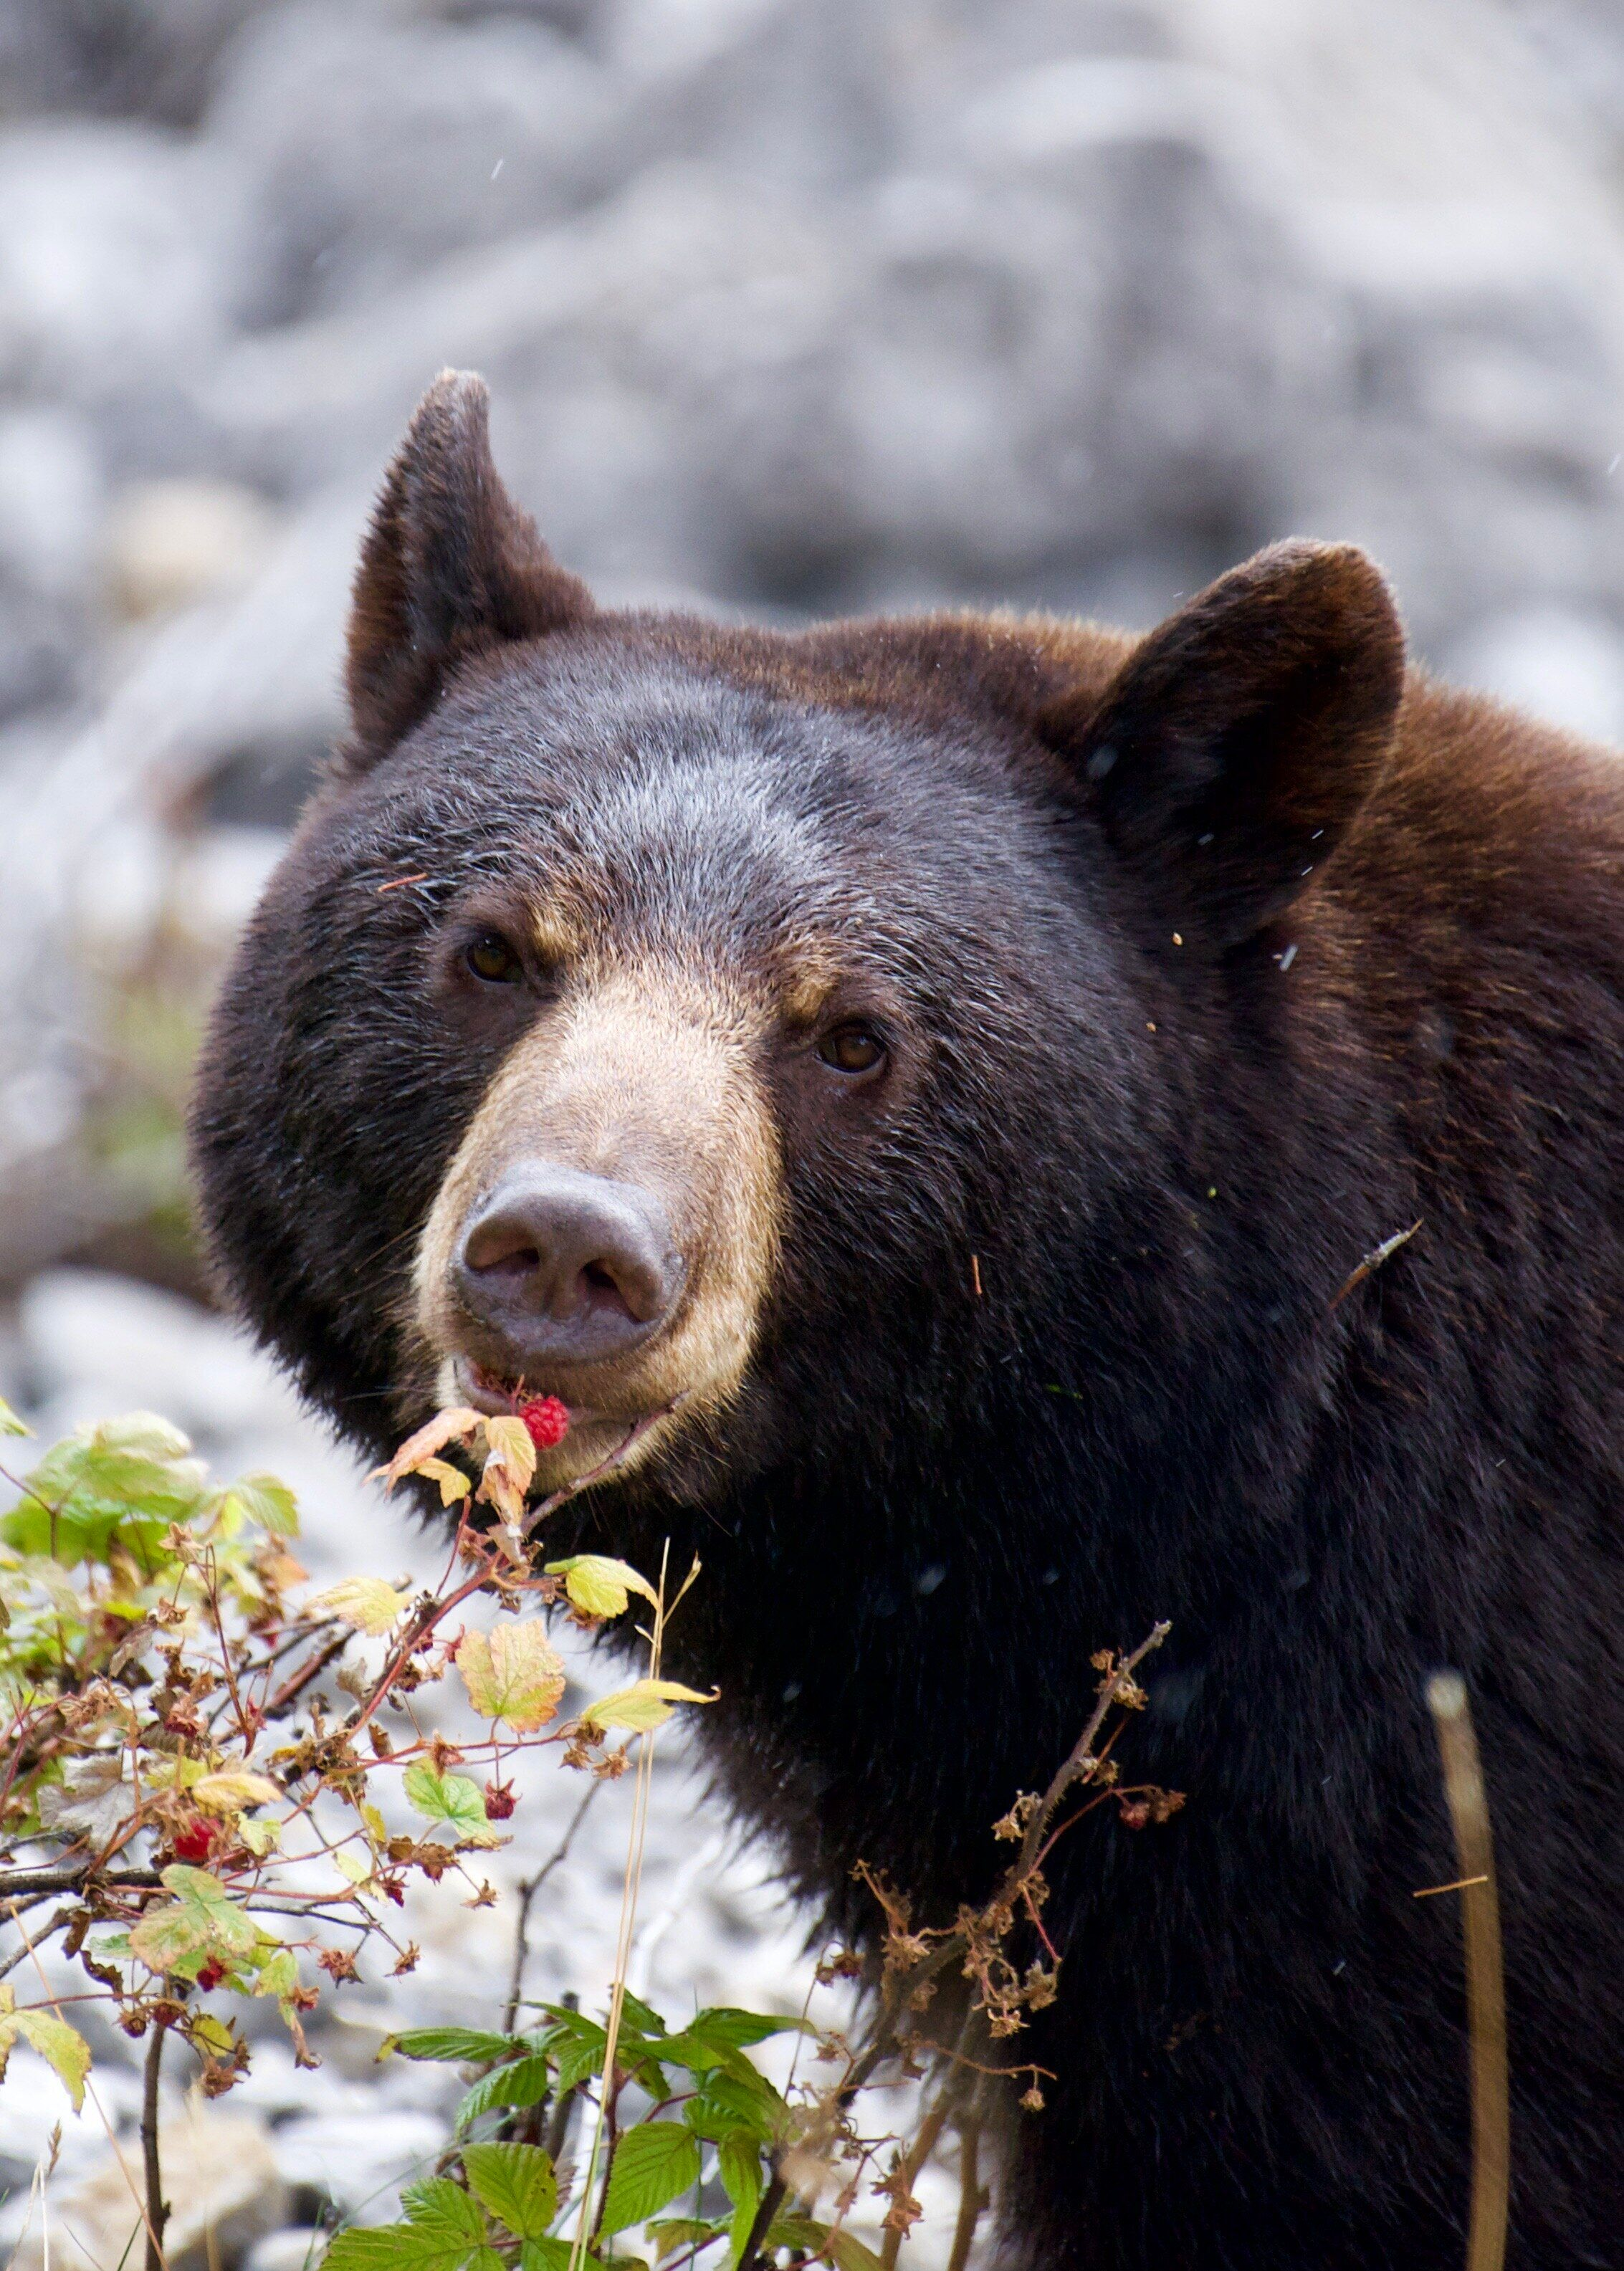 Am American black bear eats a raspberry in a forest.